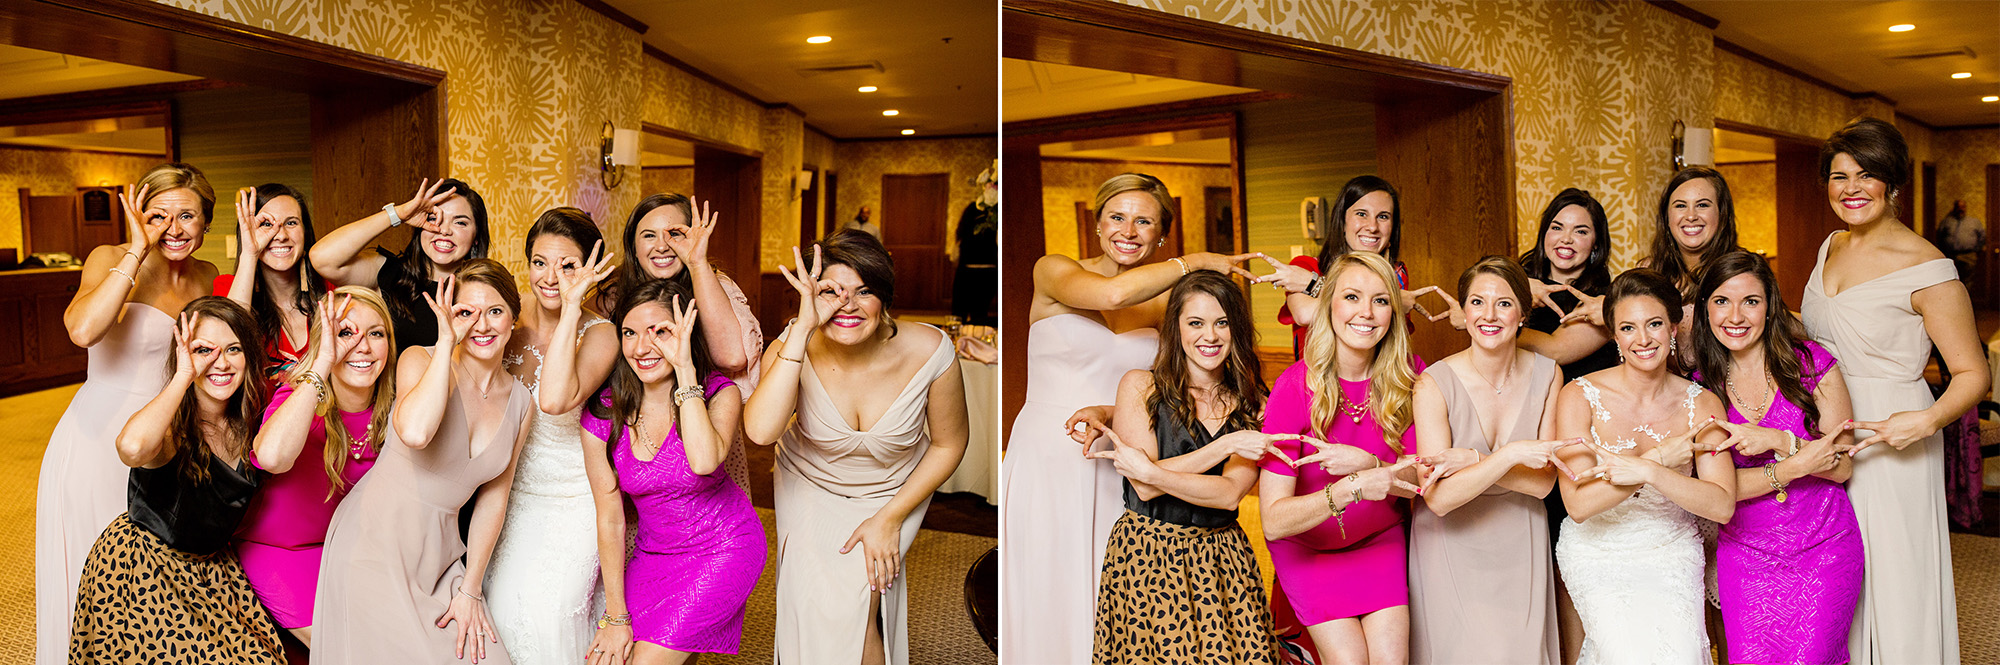 Seriously_Sabrina_Photography_Lexington_Kentucky_Downtown_Keeneland_Clubhouse_Wedding_Spitzer_132.jpg